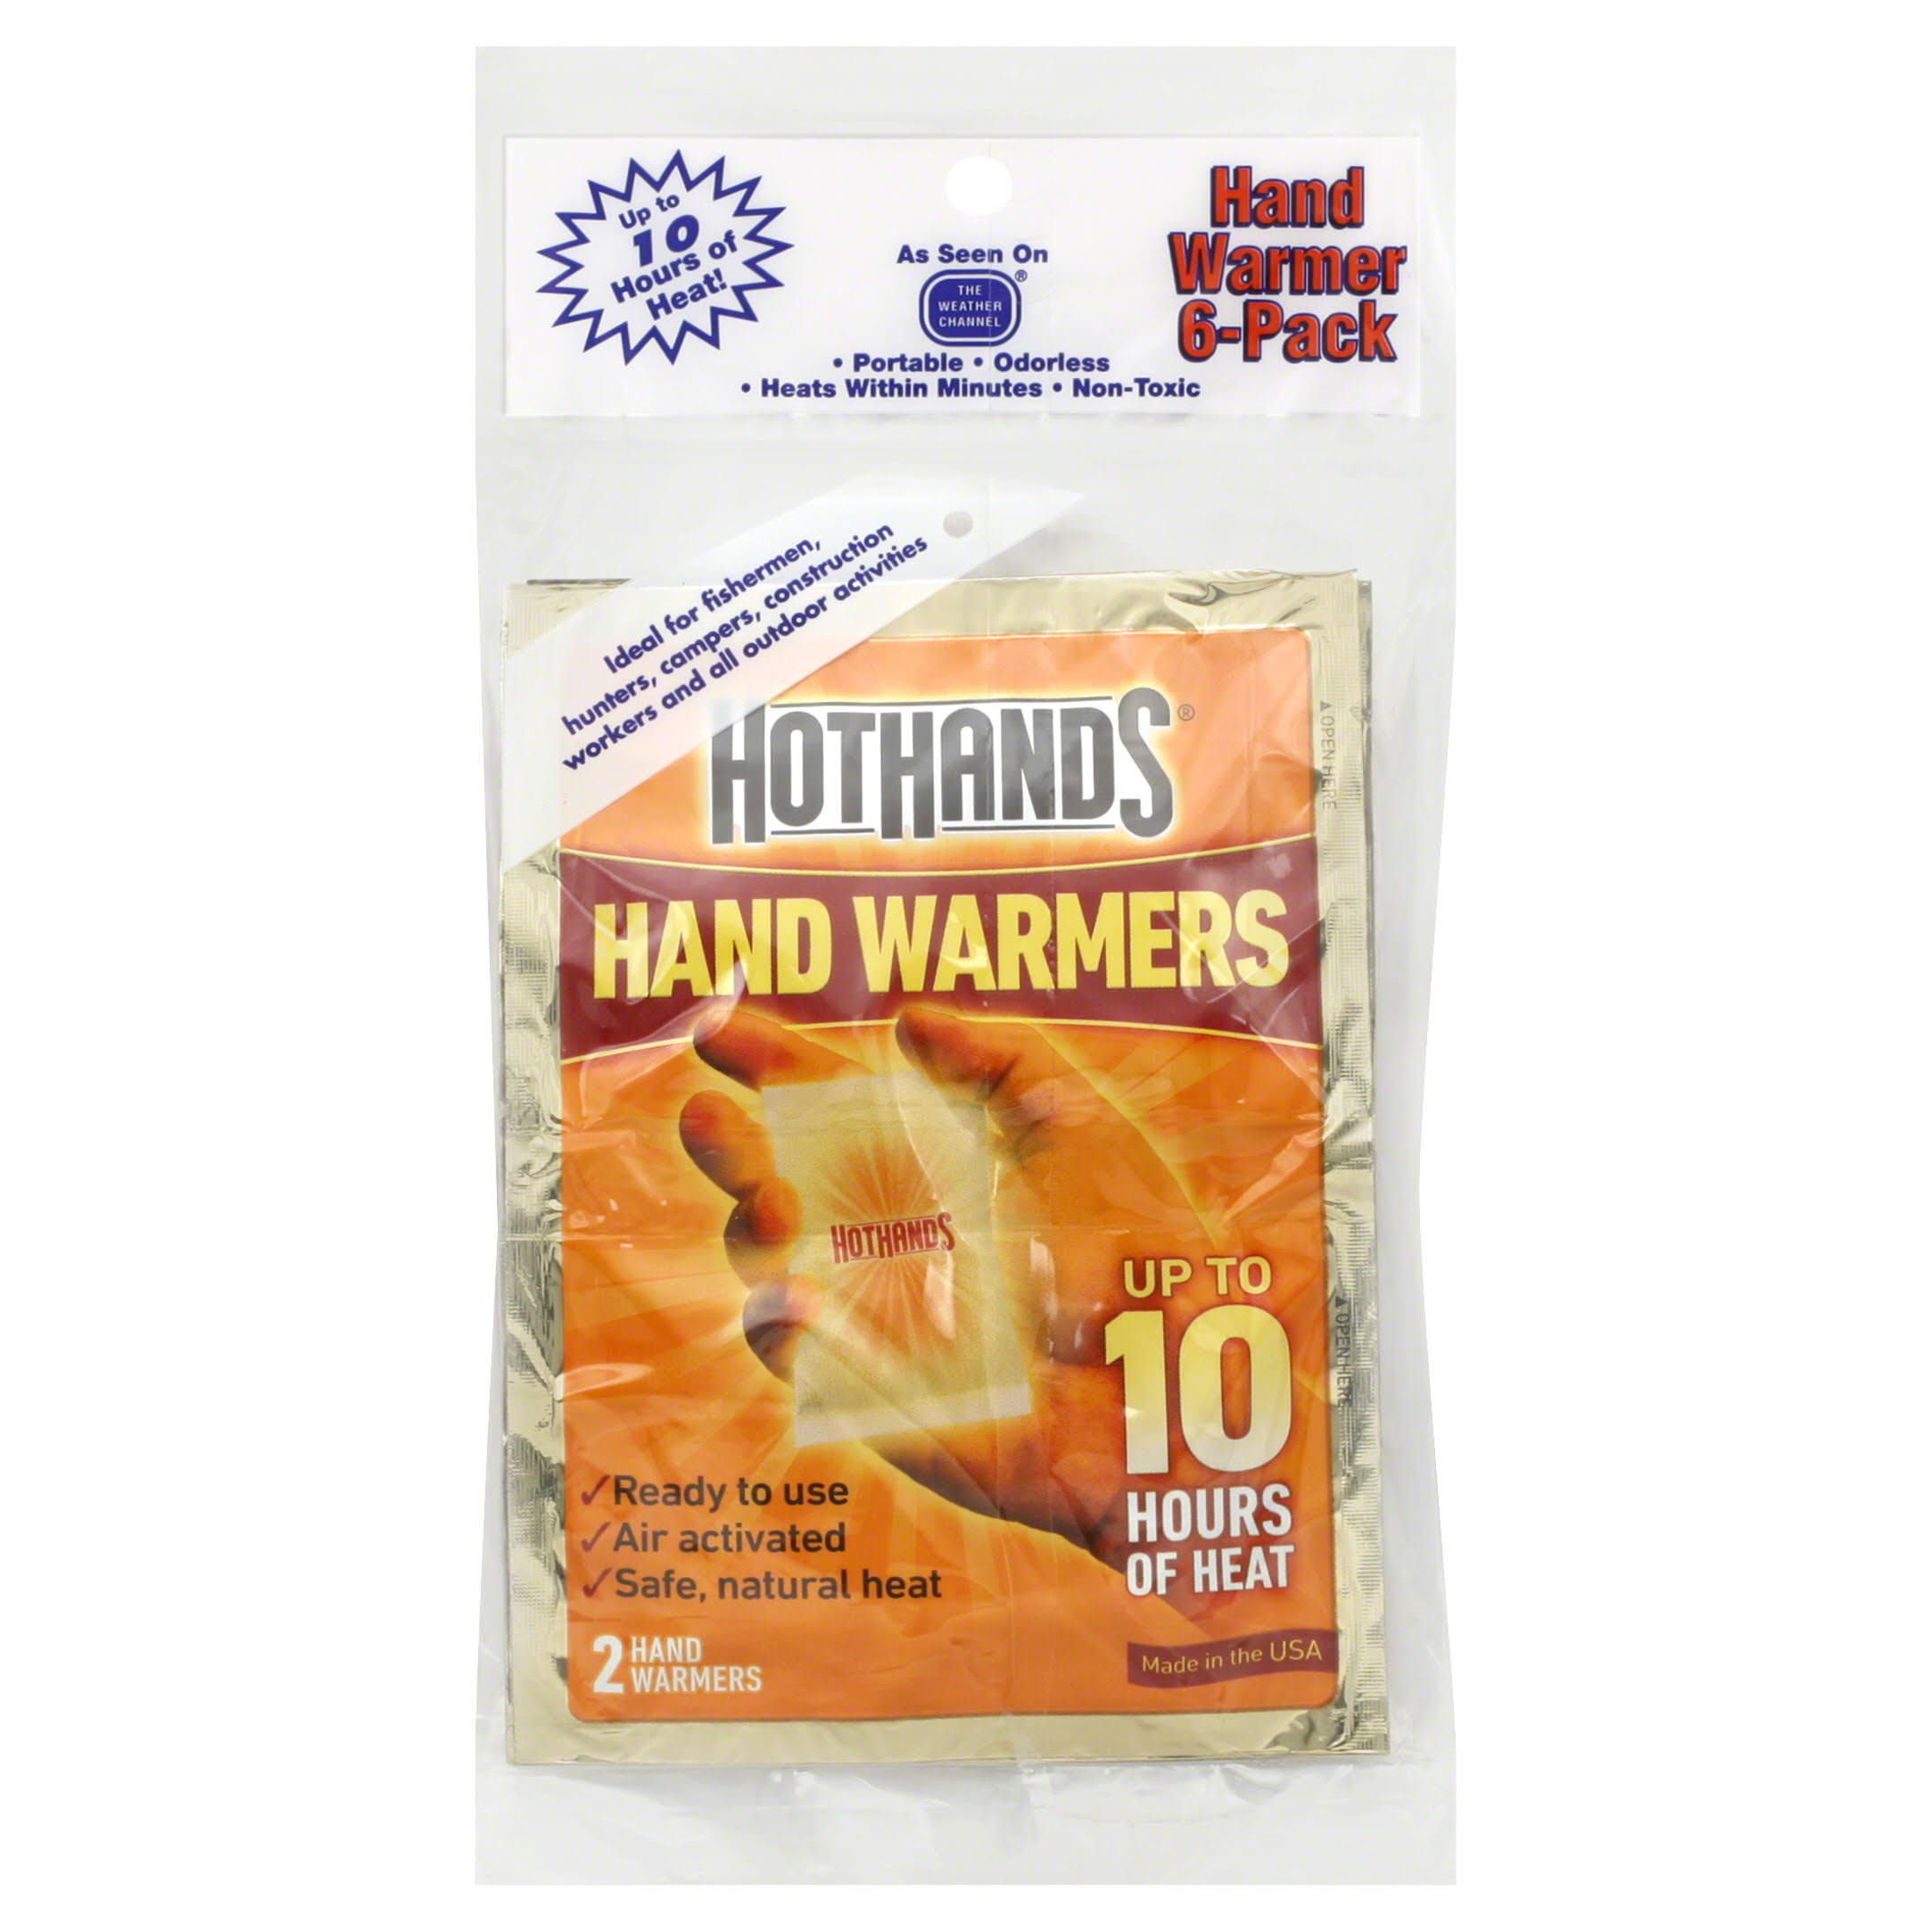 Hothands Hand Warmers - 3 Pairs